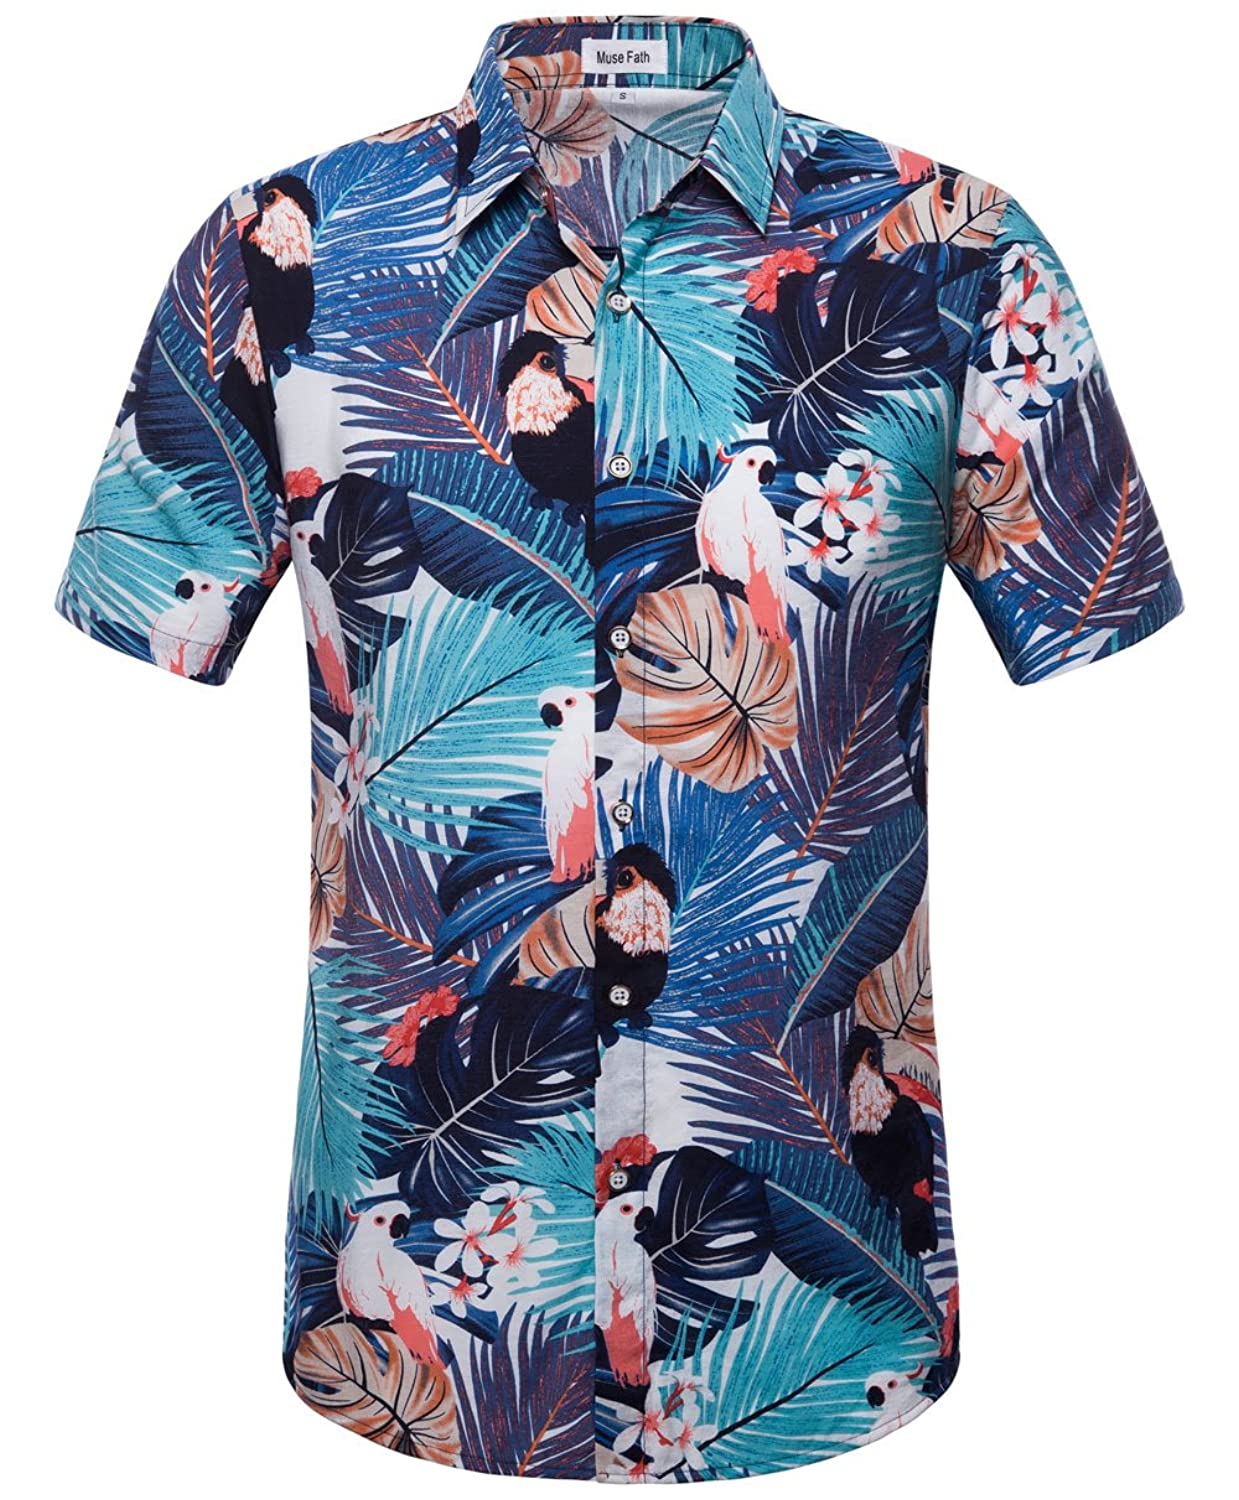 e34fbee75761 Our 100% high-grade cotton made casual floral print Hawaiian shirt can  offer you the best comfortable and soft hand feel